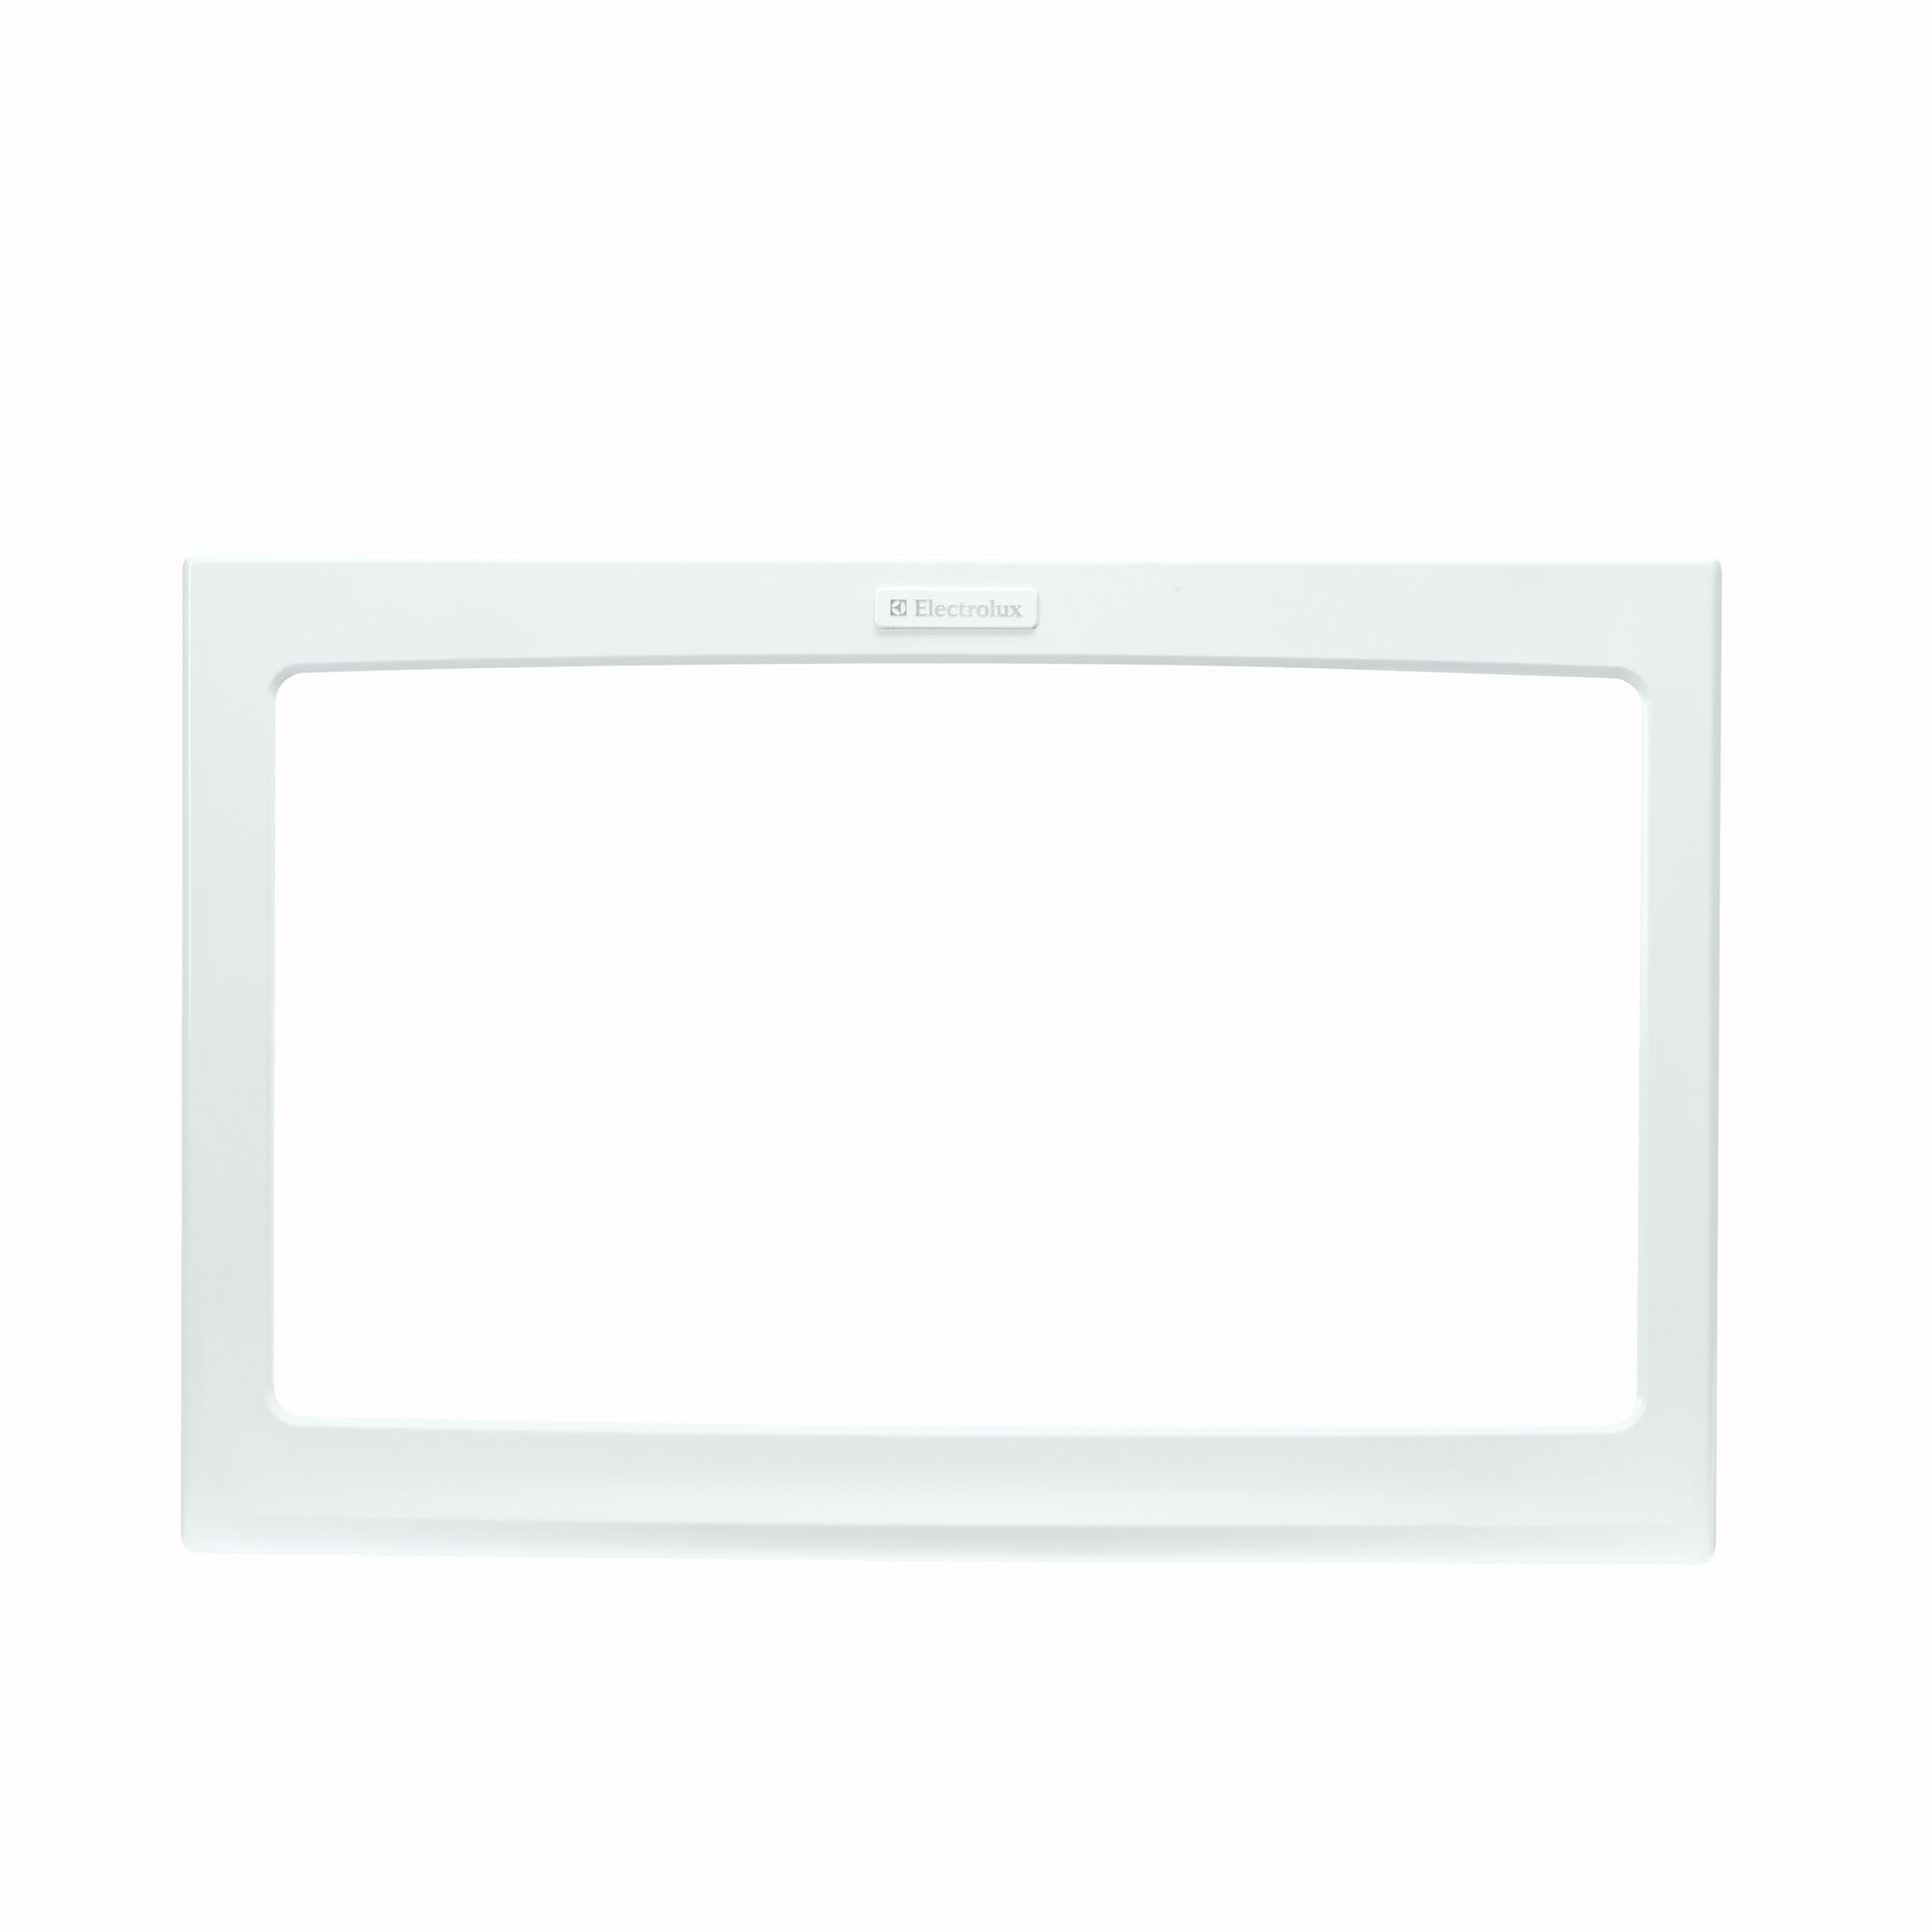 Electrolux  30 in. Trim Kit